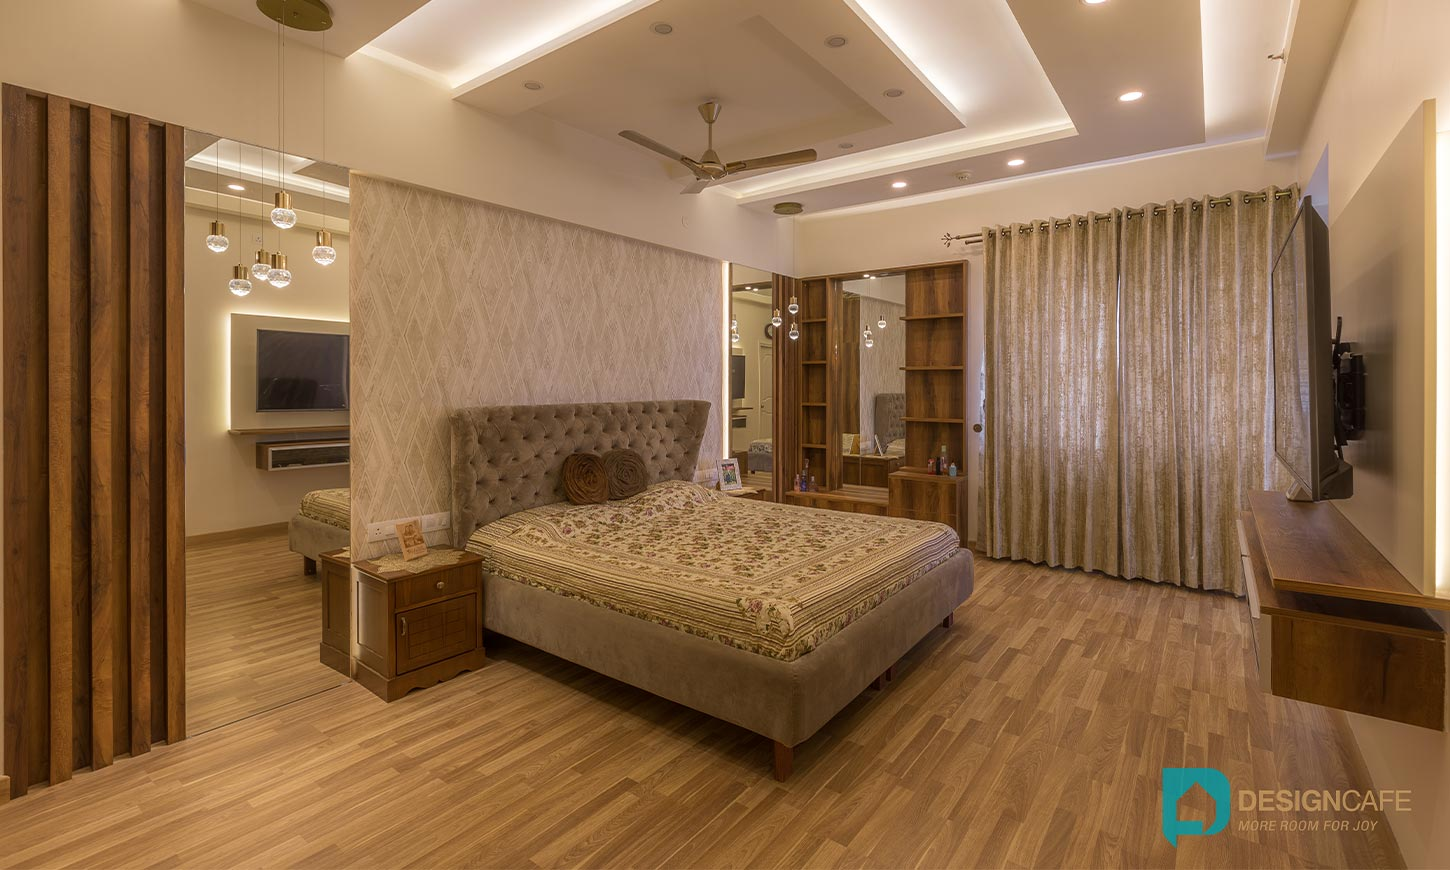 Modern bedroom designed by design cafe for house interiors in bangalore